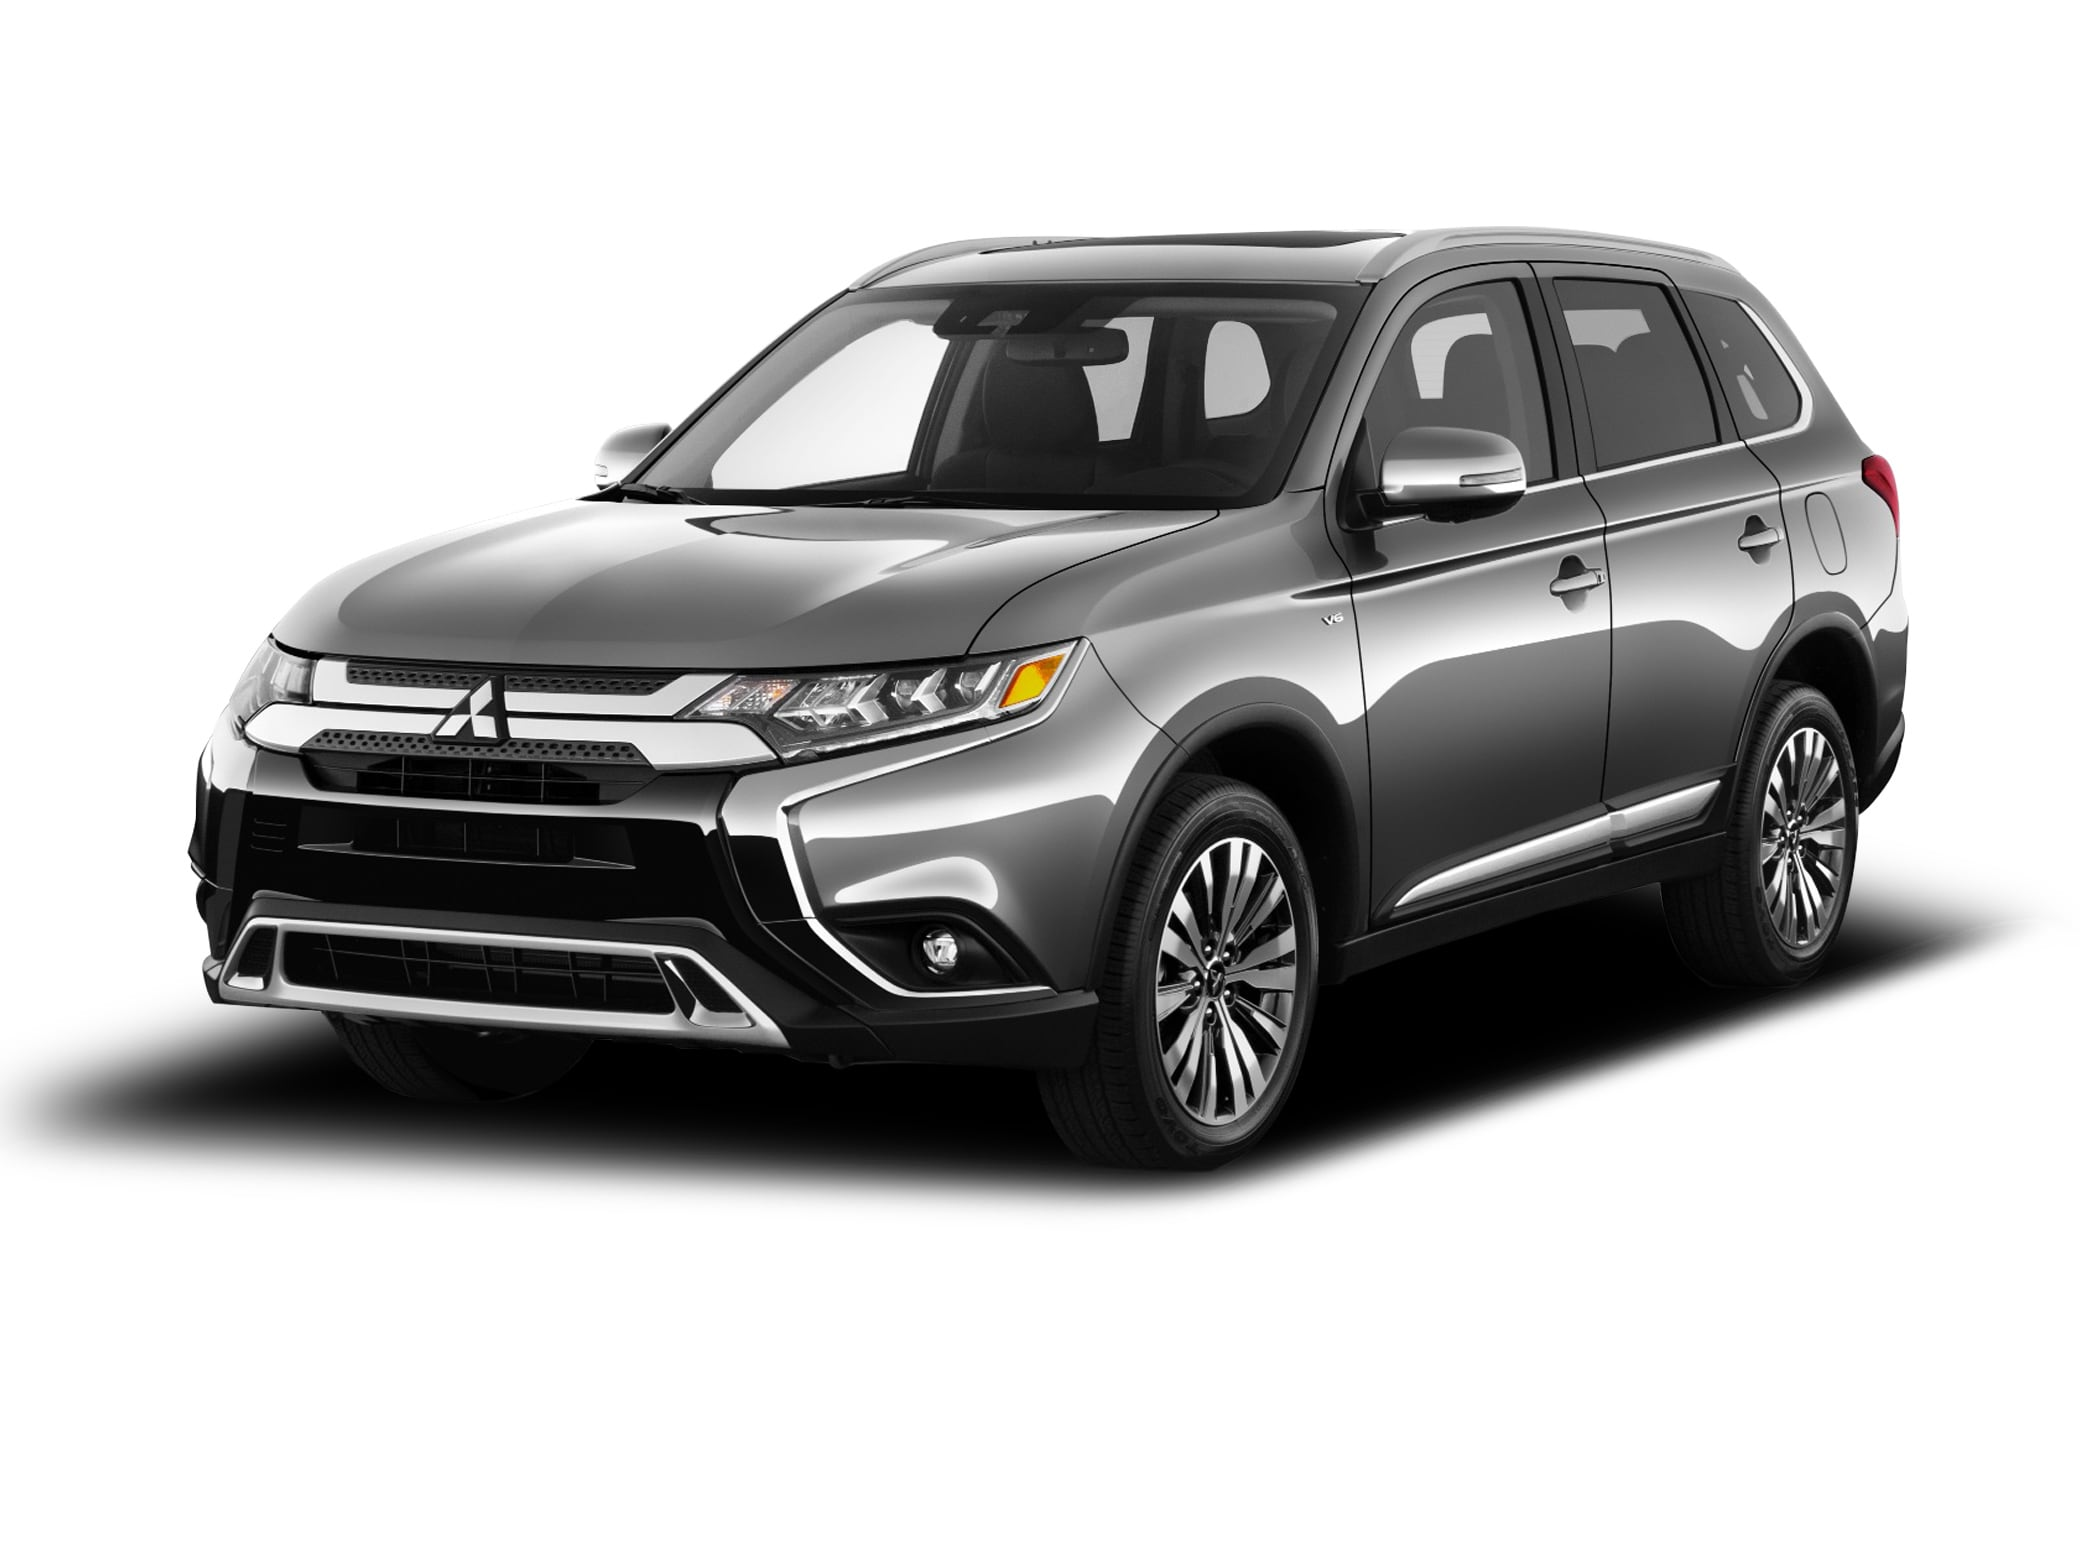 2019 Mitsubishi Outlander For Sale in THORNTON CO | SKYLINE